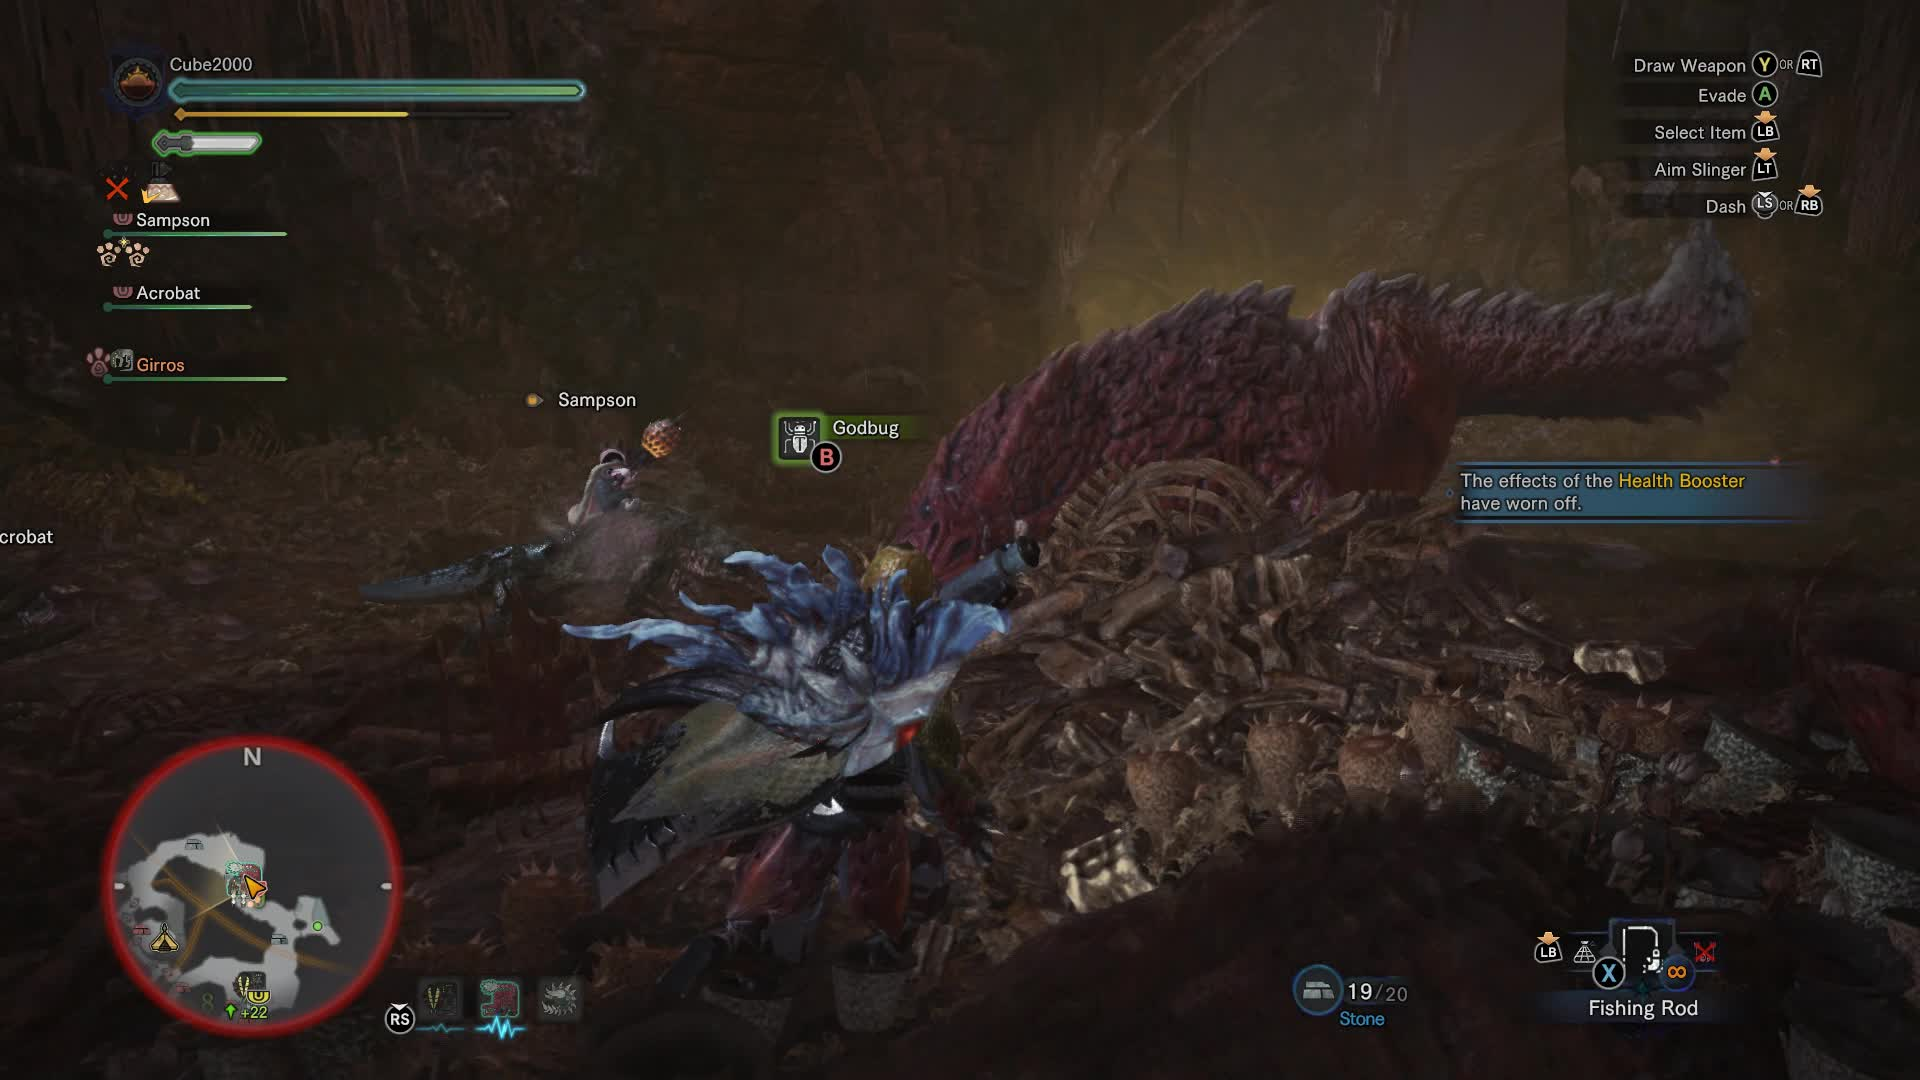 Greatsword, MH, MHW, Monster Hunter, Monster Hunter: World, Odogaron, PC, gaming, Nailed it! GIFs